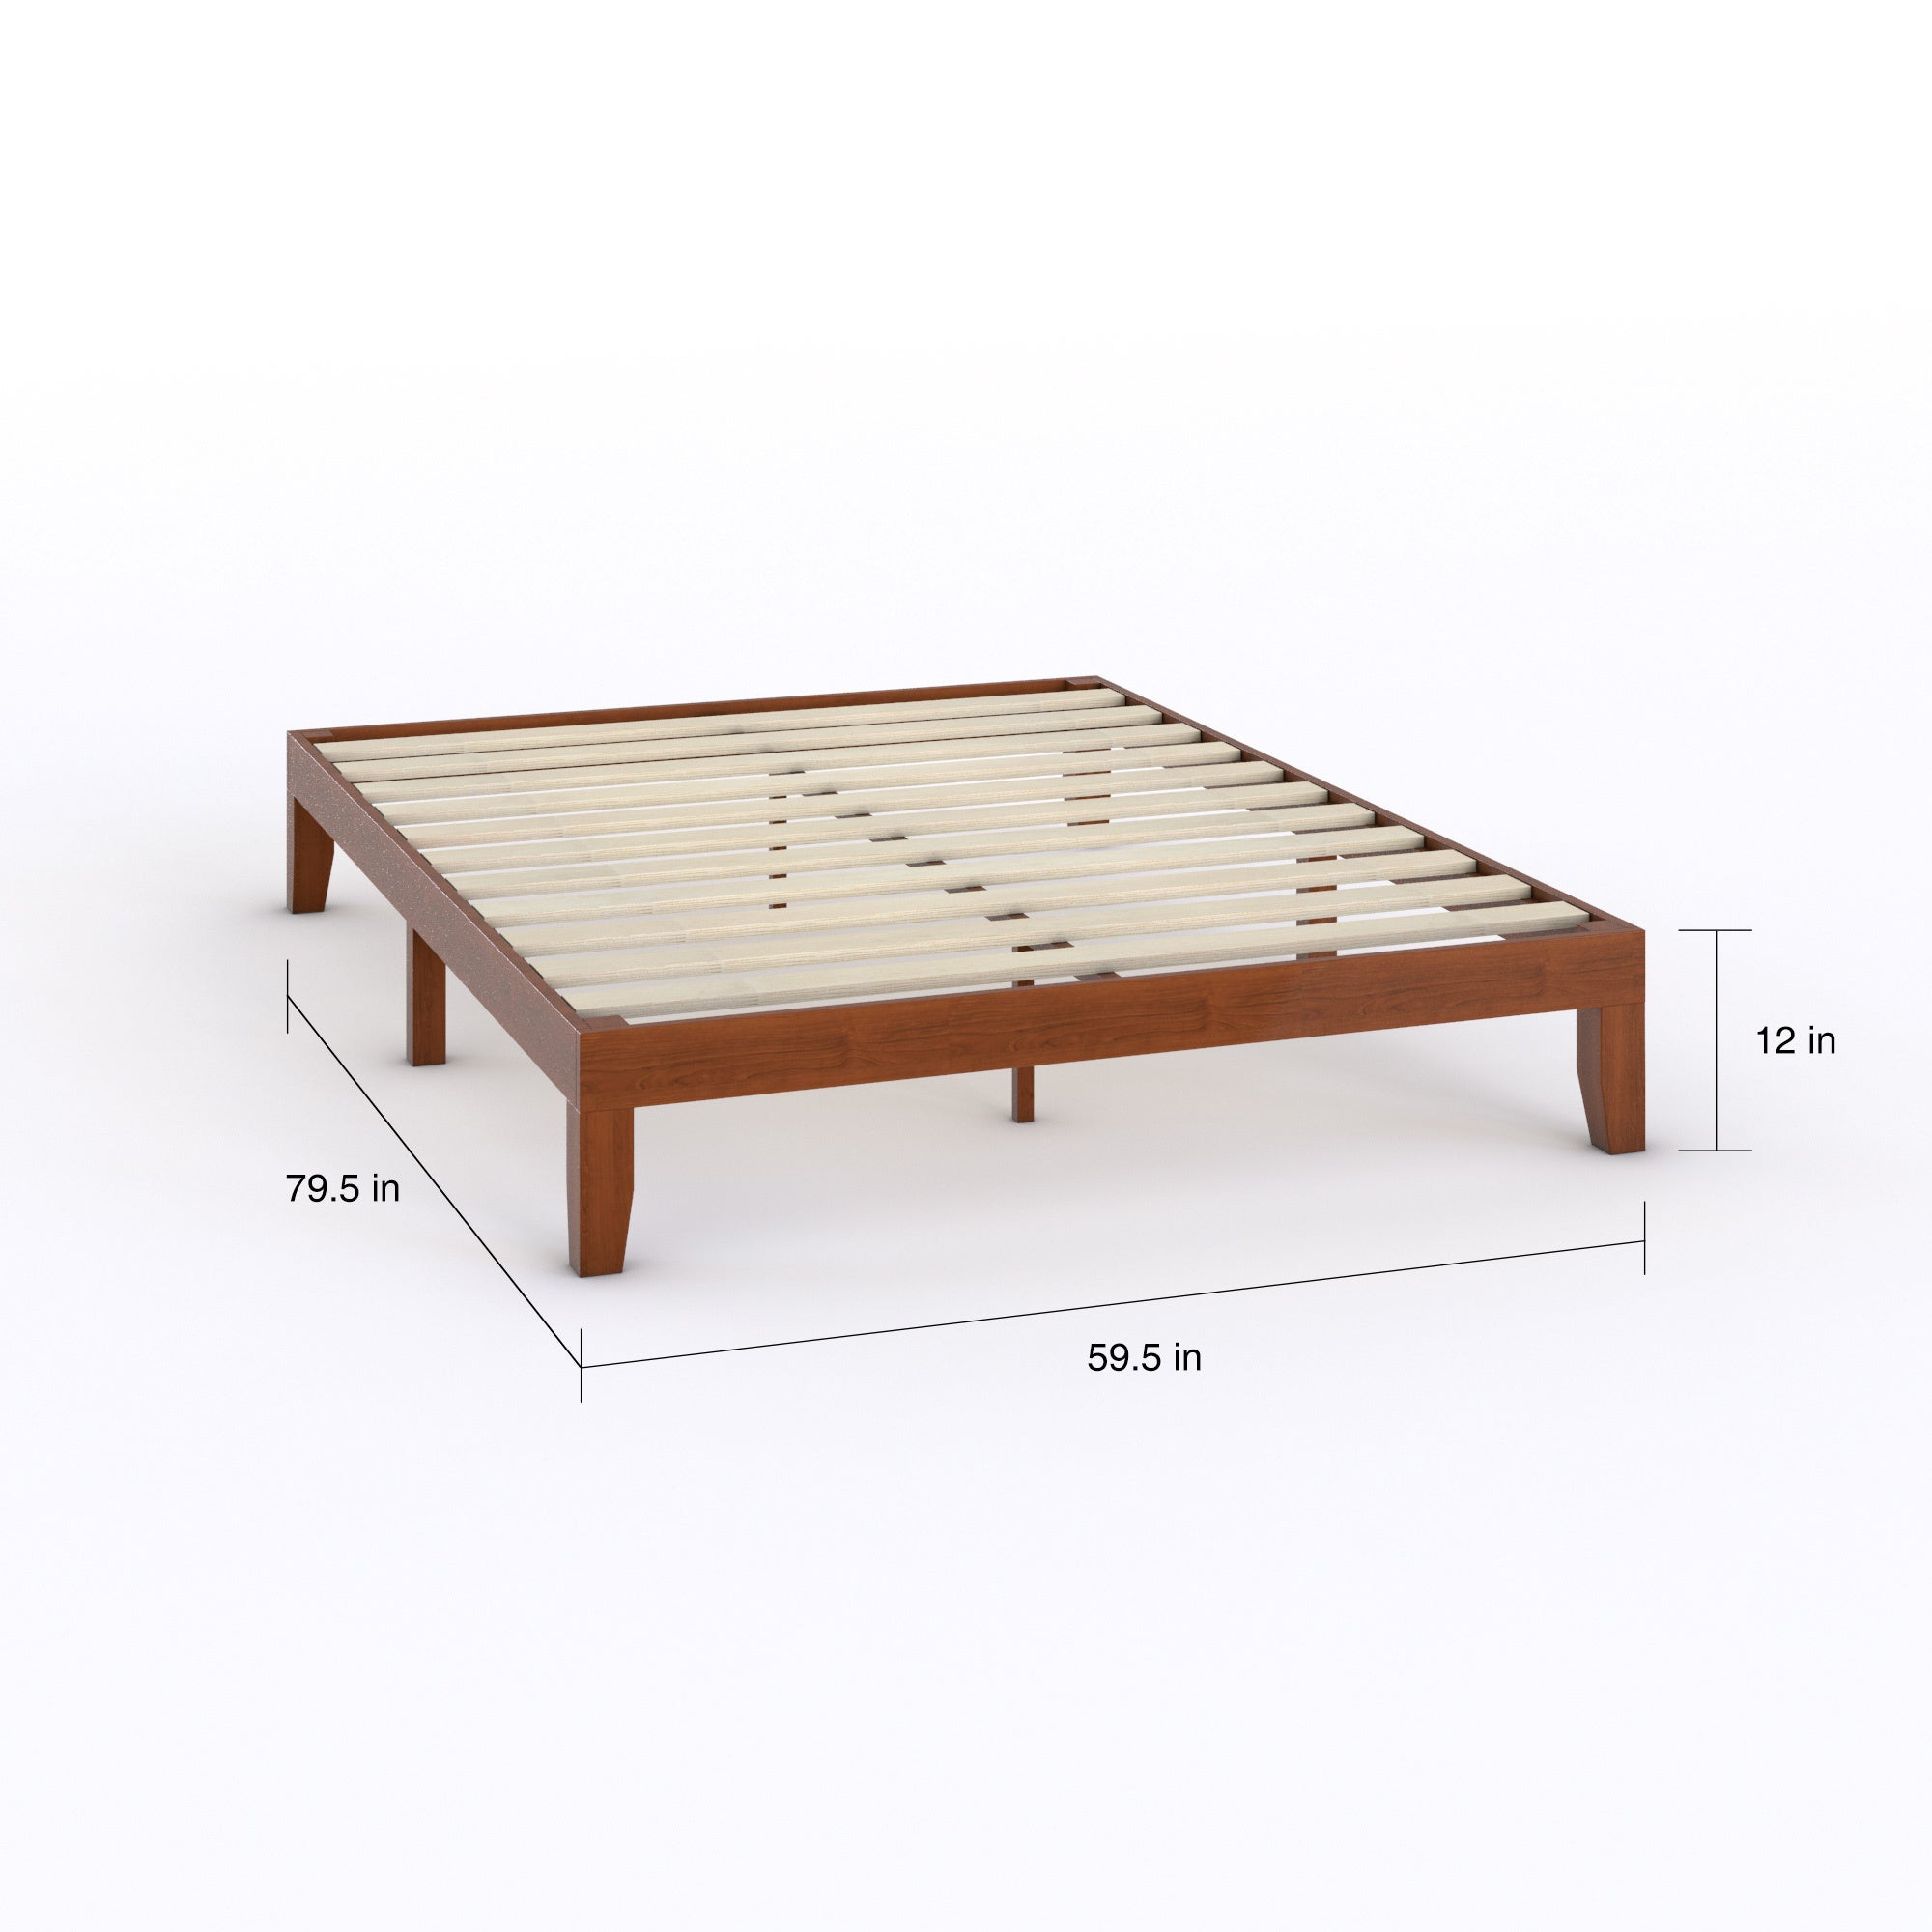 baxton queen free garden platform product paragon shipping studio in home size today bed